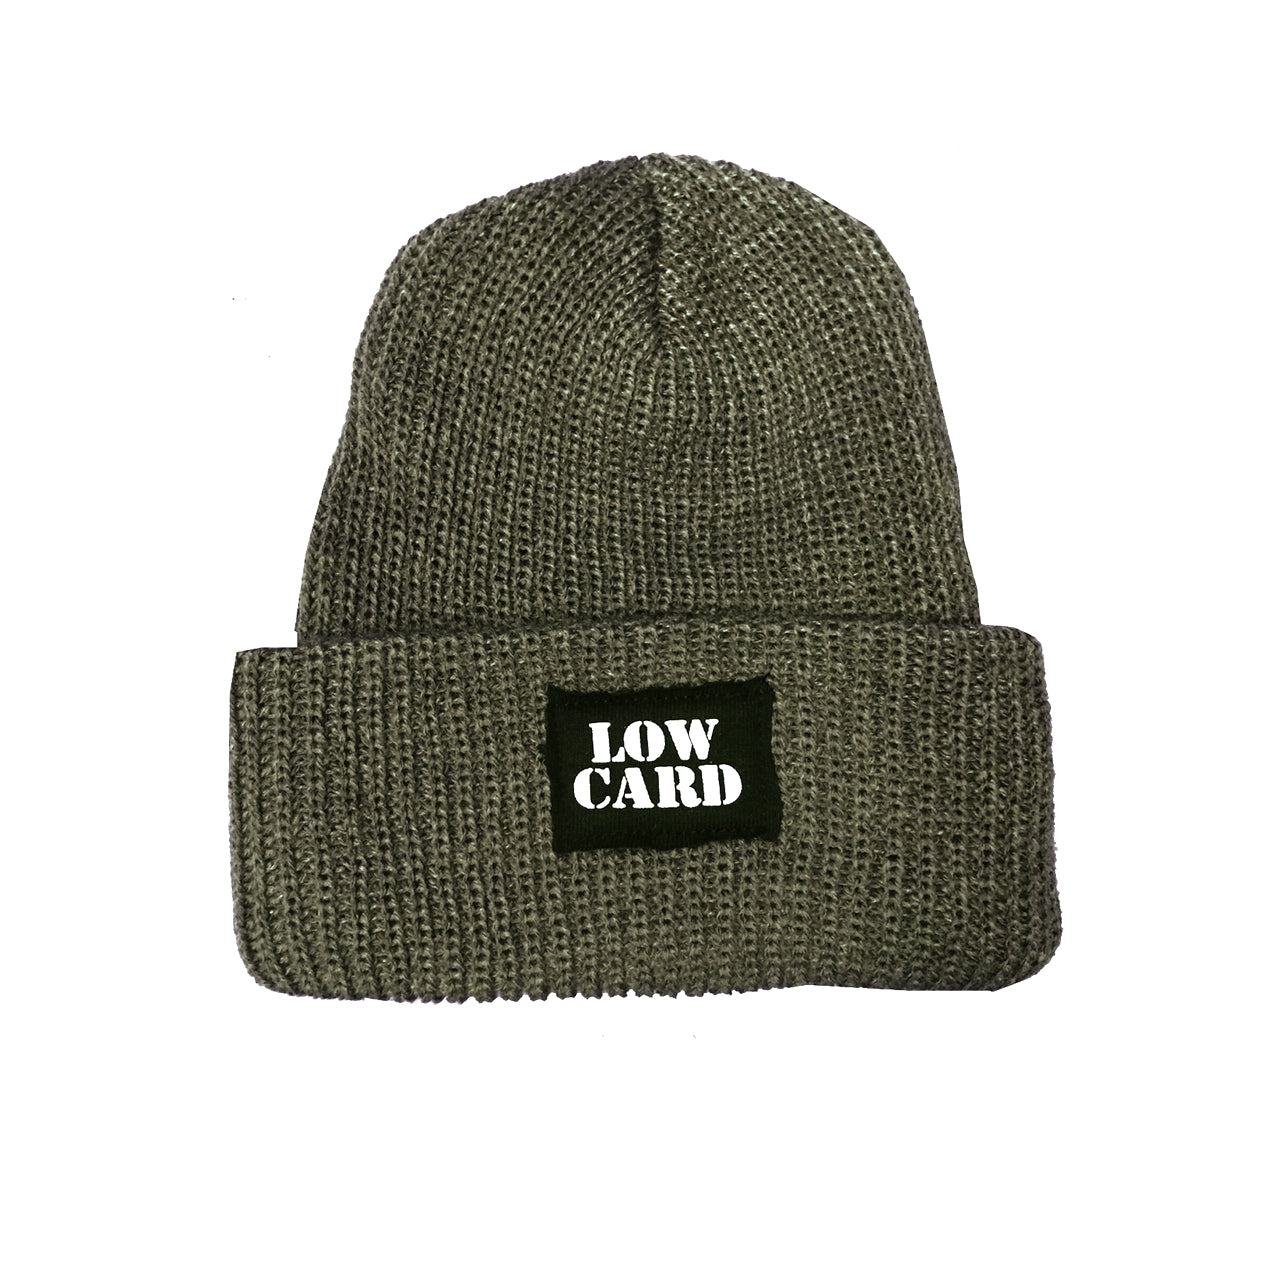 Low Card - Knit Beanie - Olive/Grey